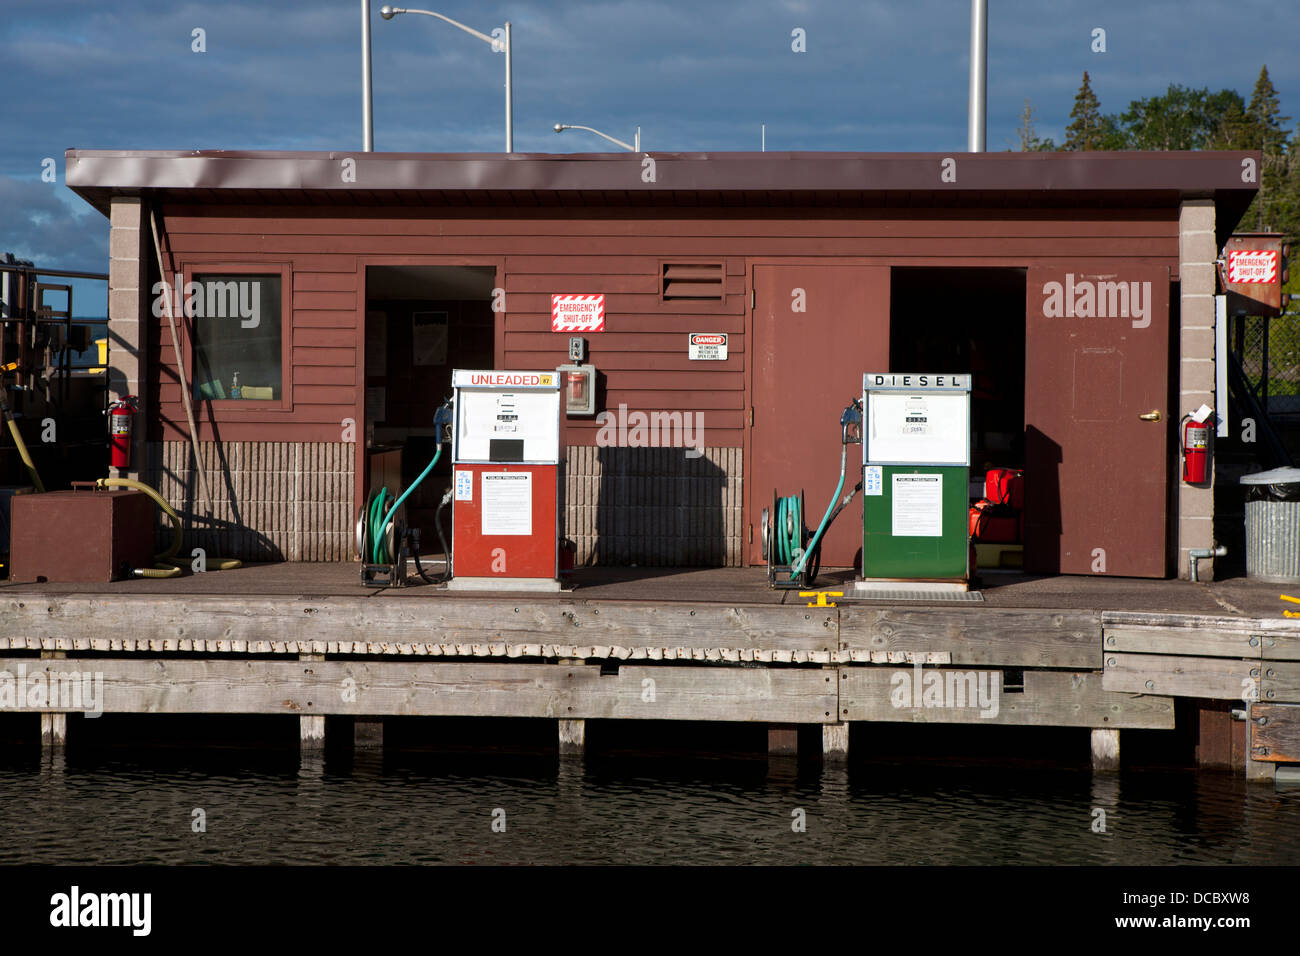 unleaded gasoline and diesel fuel pumps, rock harbor, isle royaleunleaded gasoline and diesel fuel pumps, rock harbor, isle royale national park, michigan, united states of america